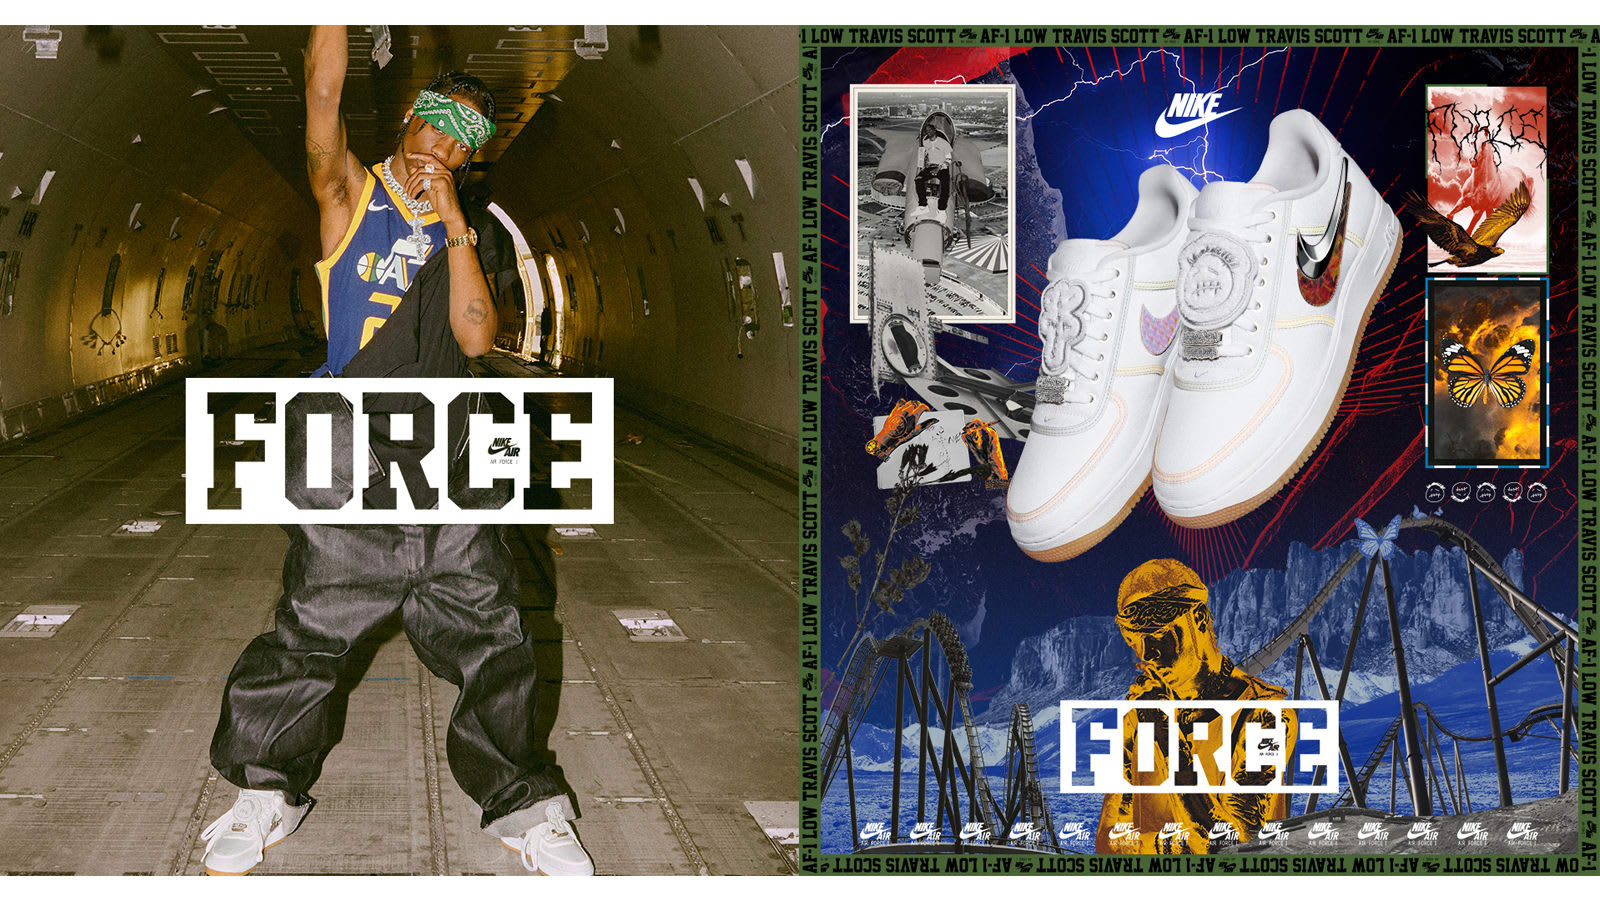 END. Features | Nike AF 100: Air Force 1 LowTravis Scott